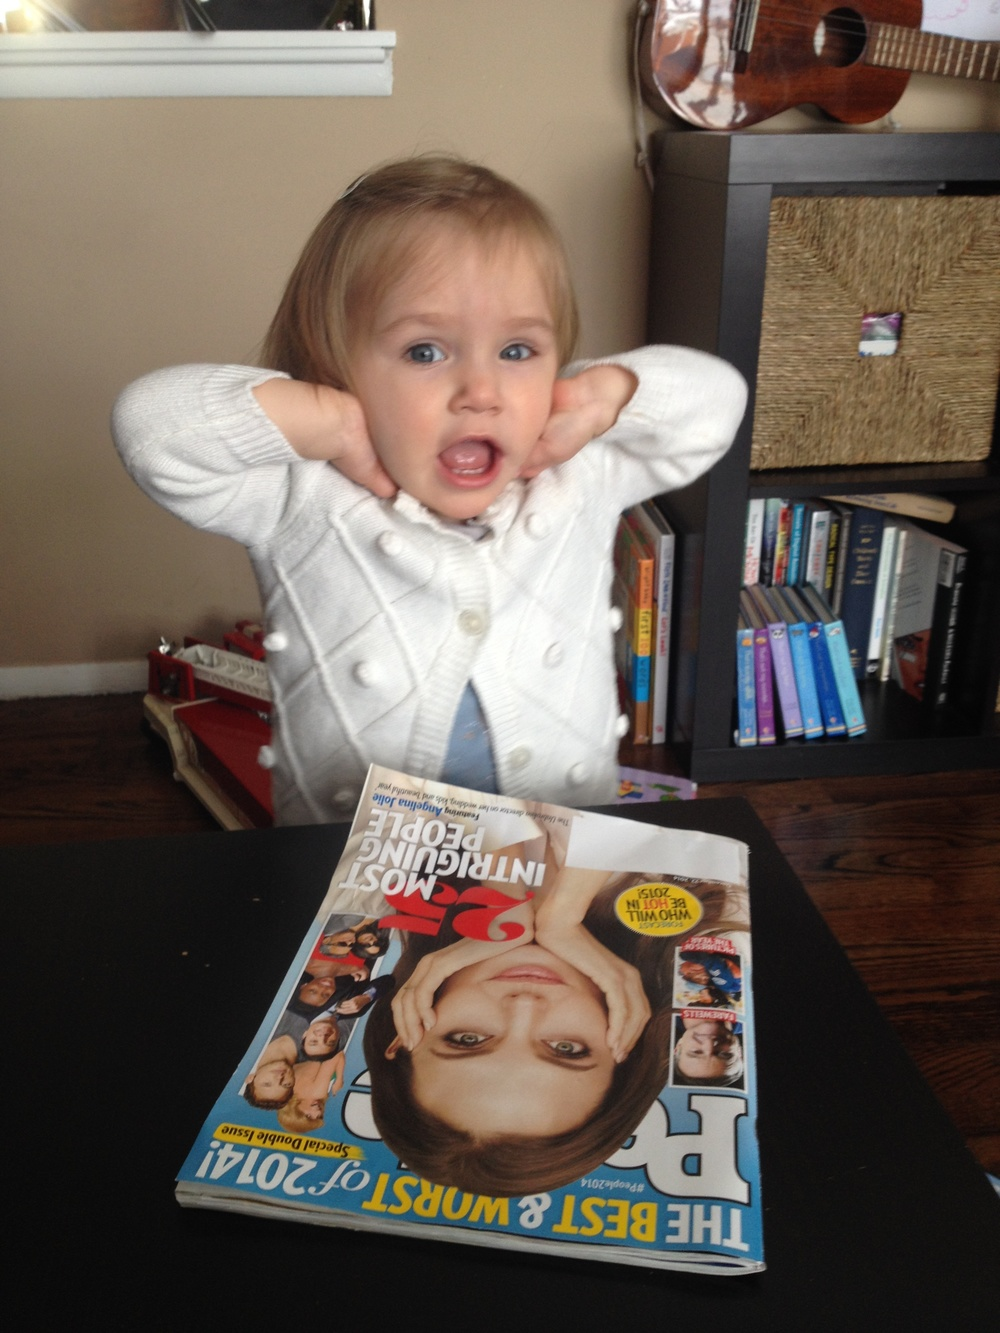 Toddler emulating Angelina Jolie